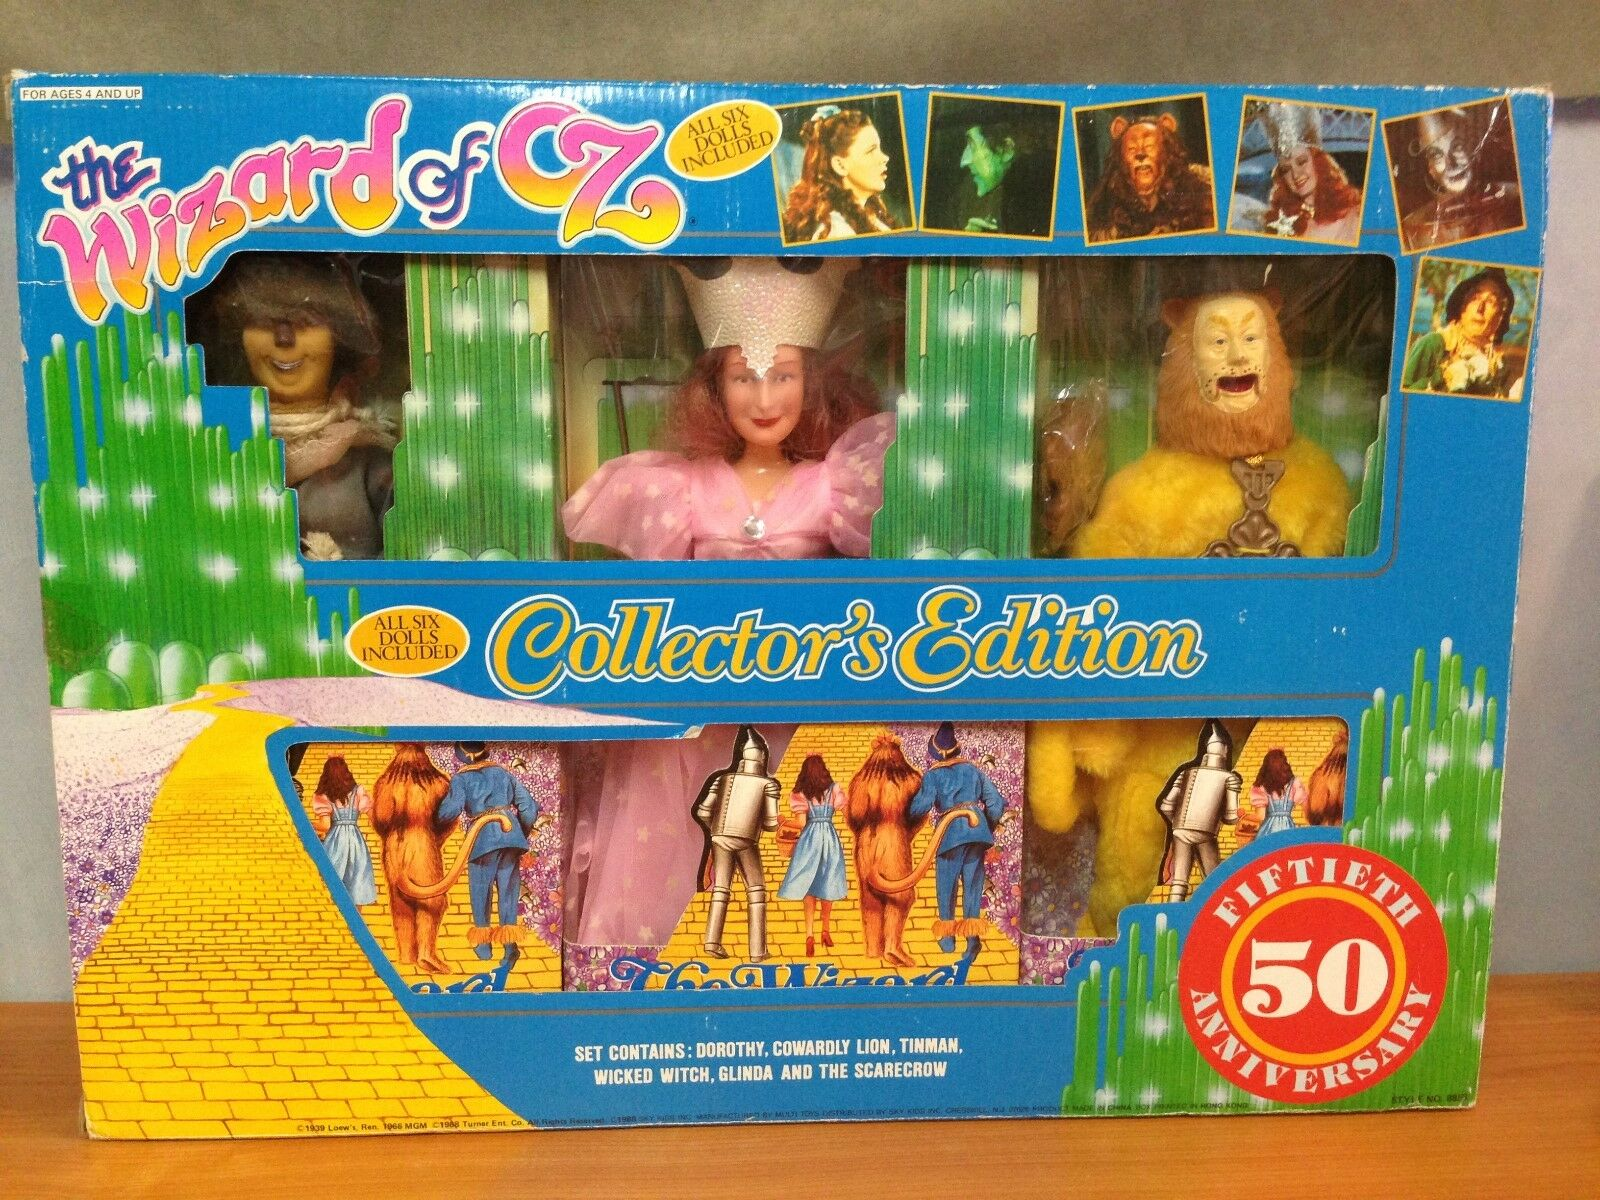 Vintage 1988 El Mago de Oz Collectors Edition 6 Figura Set 50th aniversario